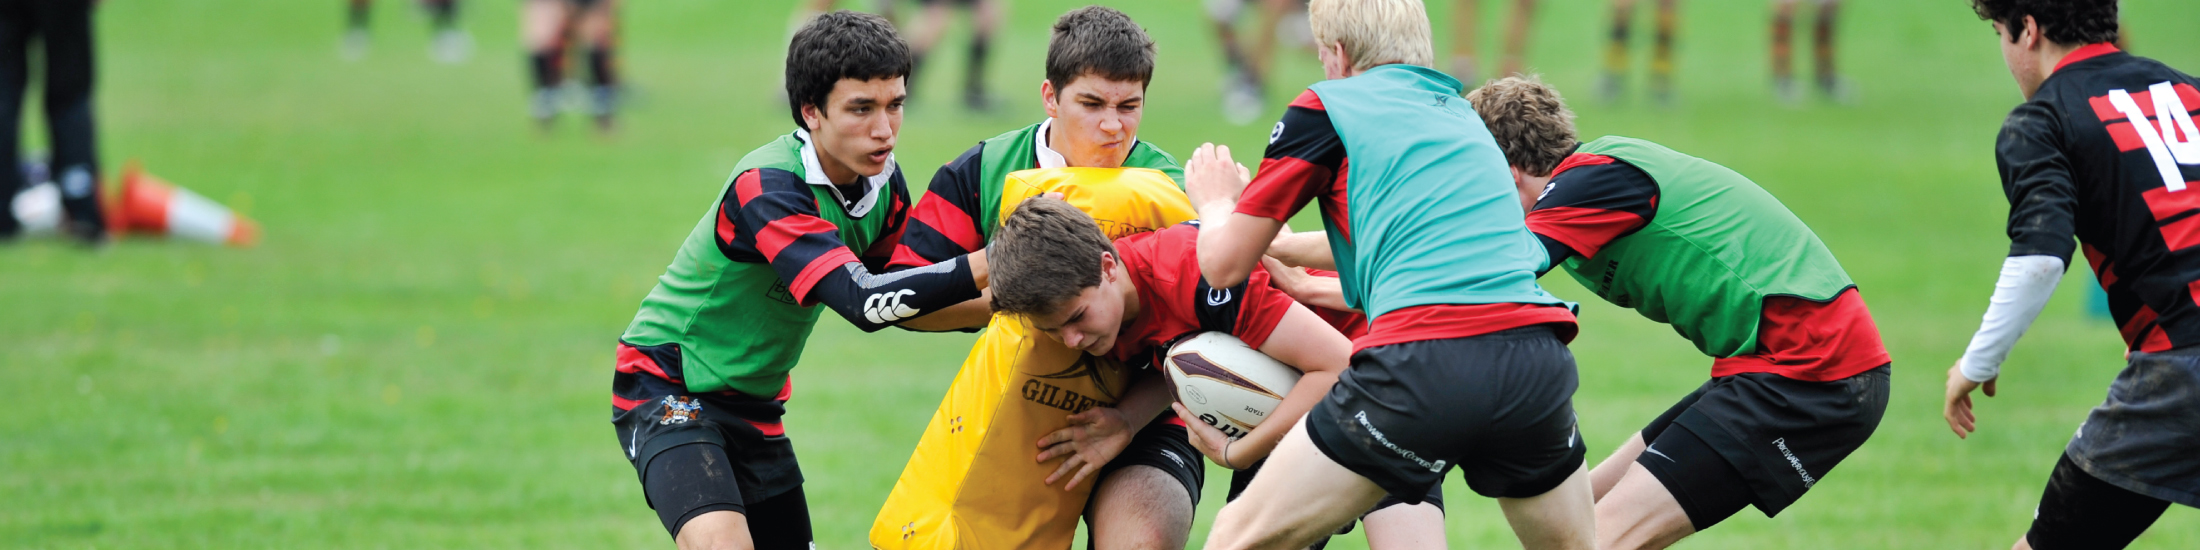 School boys in rugby tackle